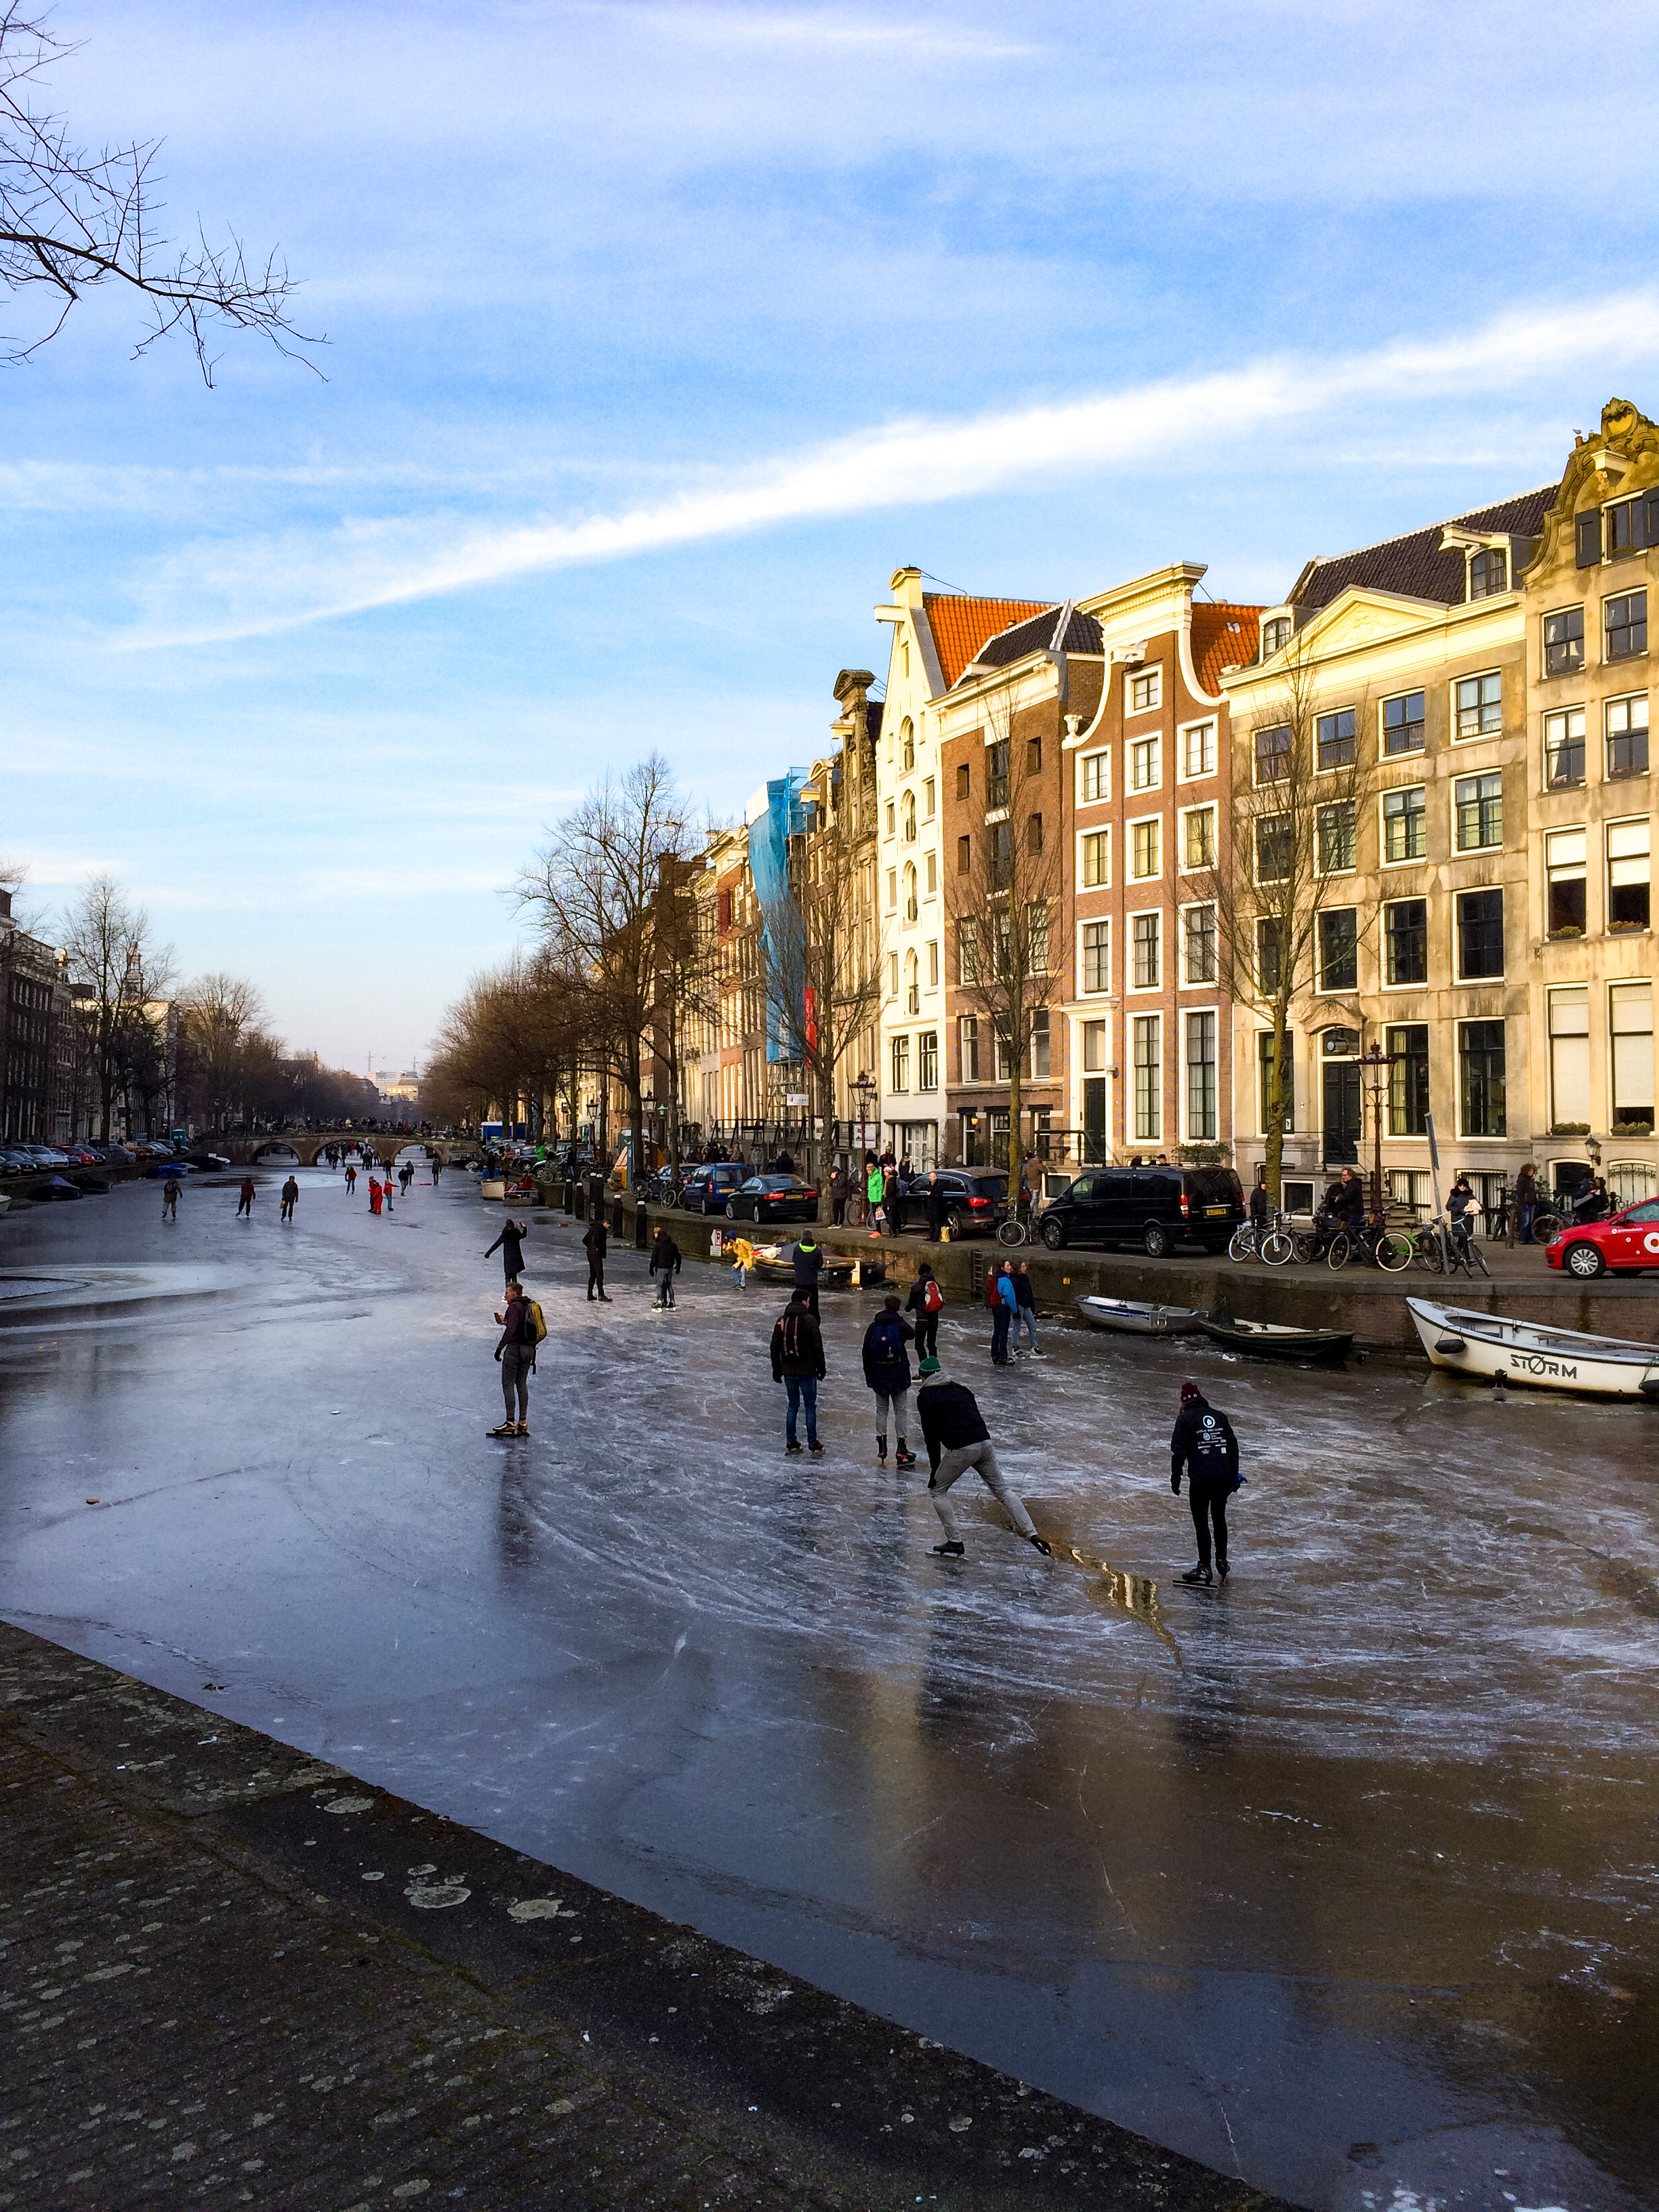 Icy Canal in Amsterdam